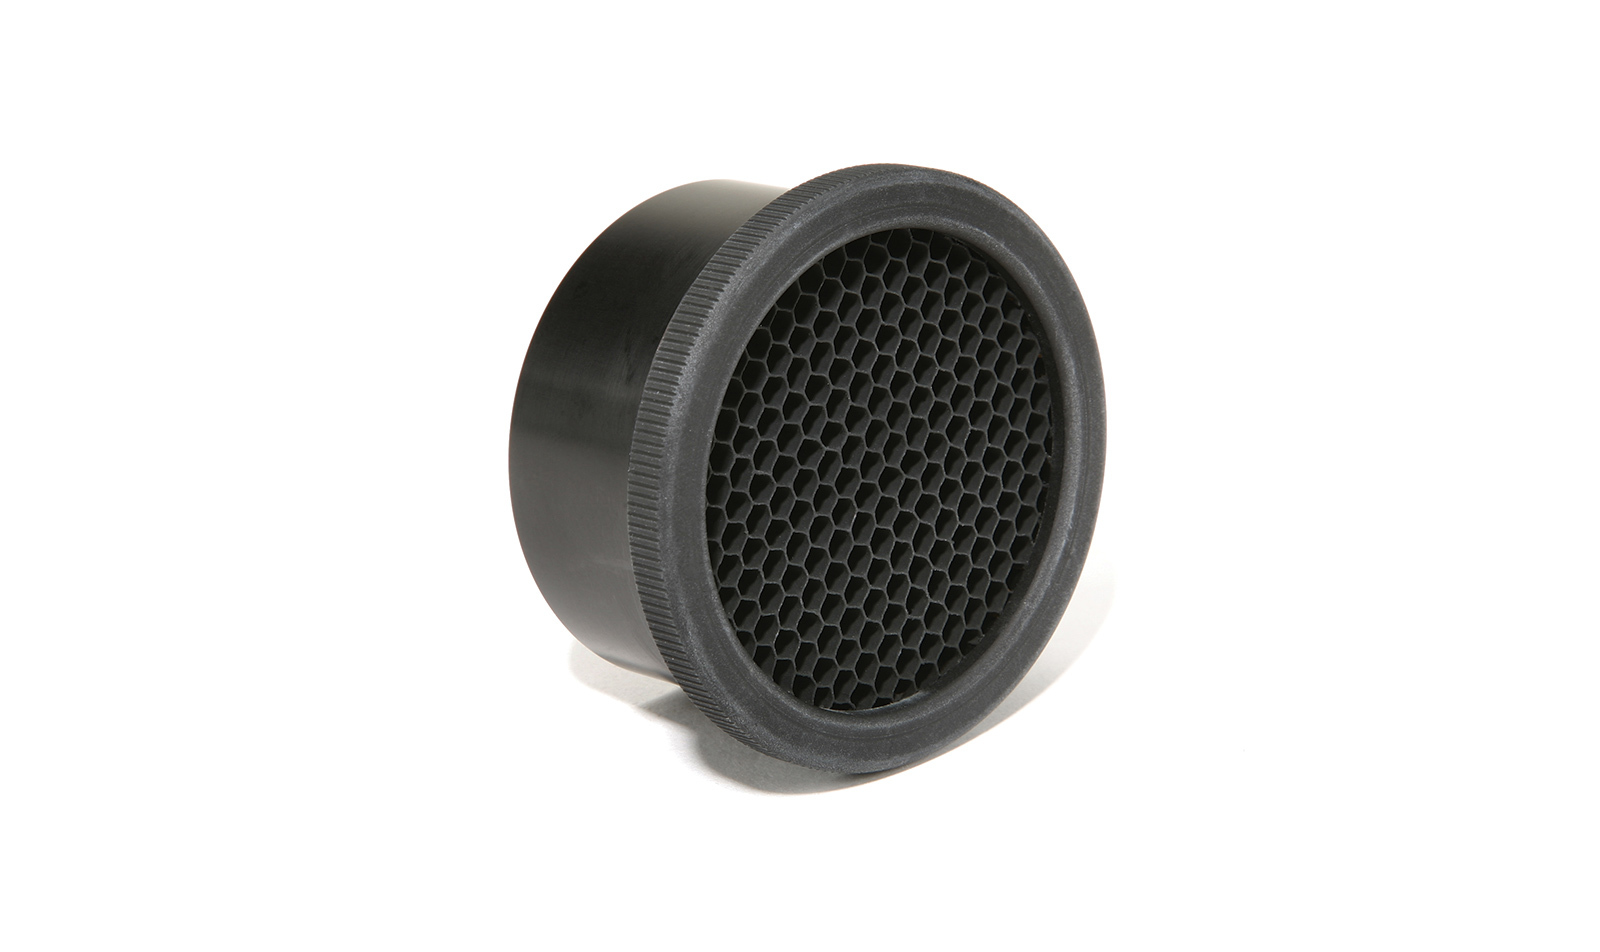 Tenebraex killFLASH® Anti-Reflection Device for 5.5x50 ACOG®